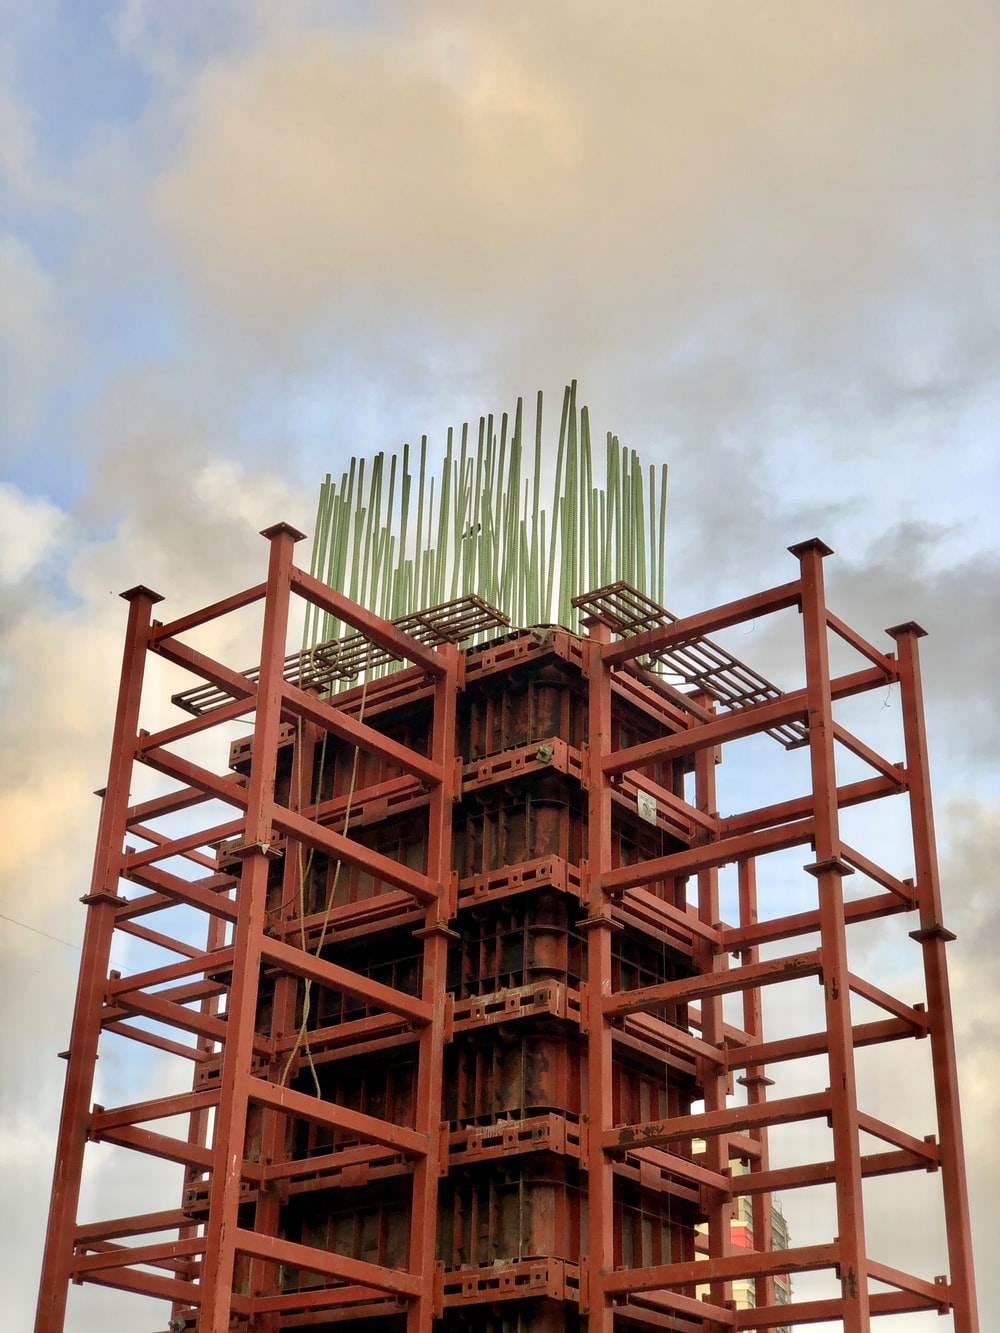 brown wooden tower under cloudy sky